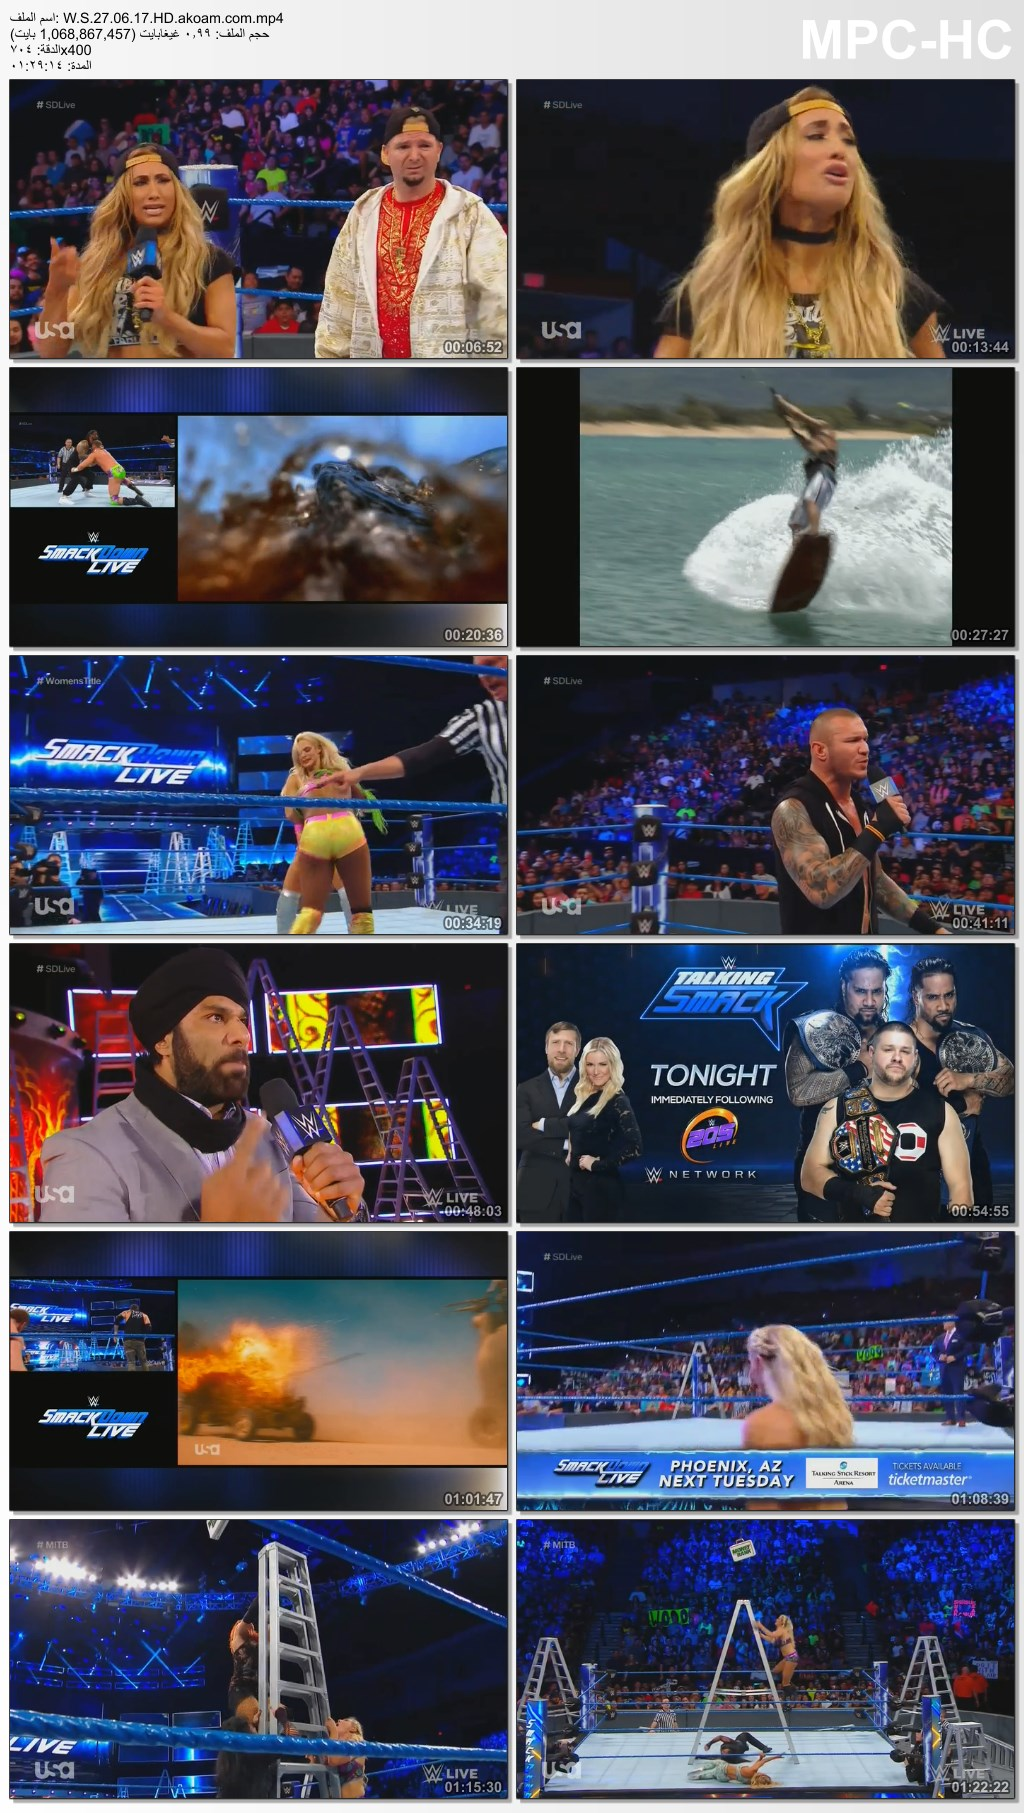 WWE Smackdown Live 2017,WWE,Smackdown